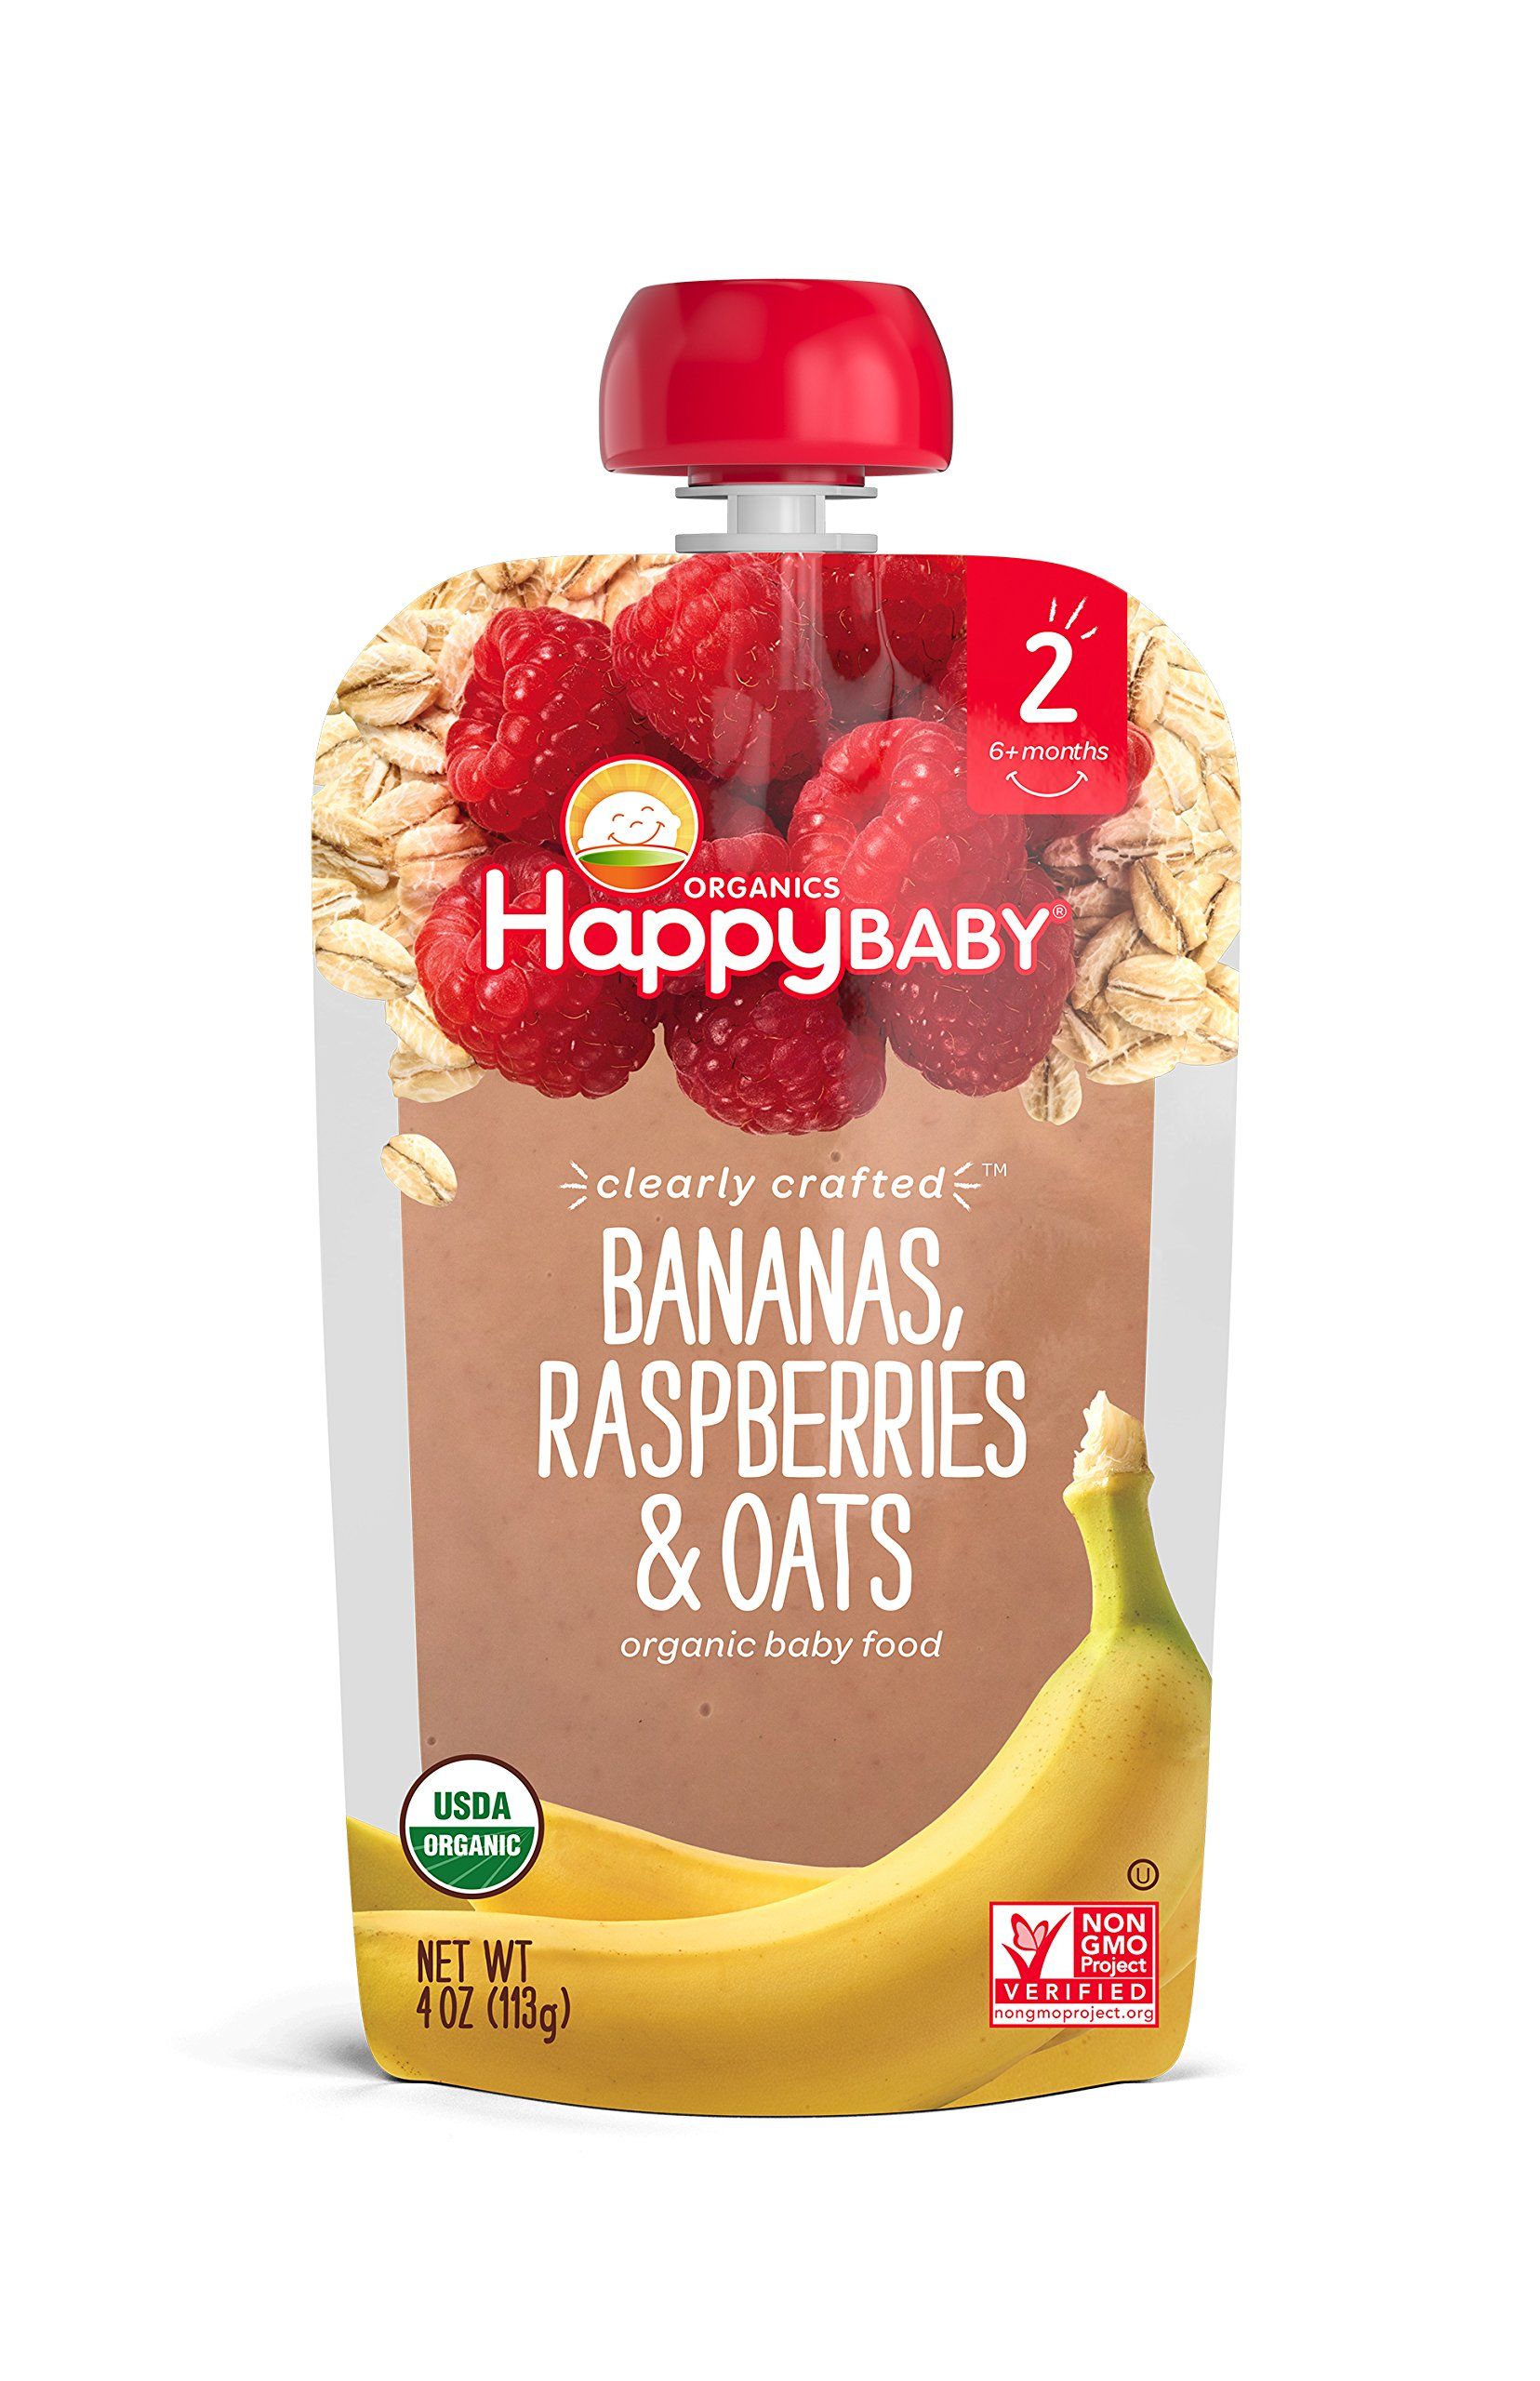 Happy Baby Organic Clearly Crafted Stage 2 Baby Food Bananas Raspberries & Oats, 4 Ounce Pouch (Pack of 16) Resealable Baby Food Pouches, Fruit & Veggie Puree, Organic Non-GMO Gluten Free Kosher by Happy Baby (Image #3)